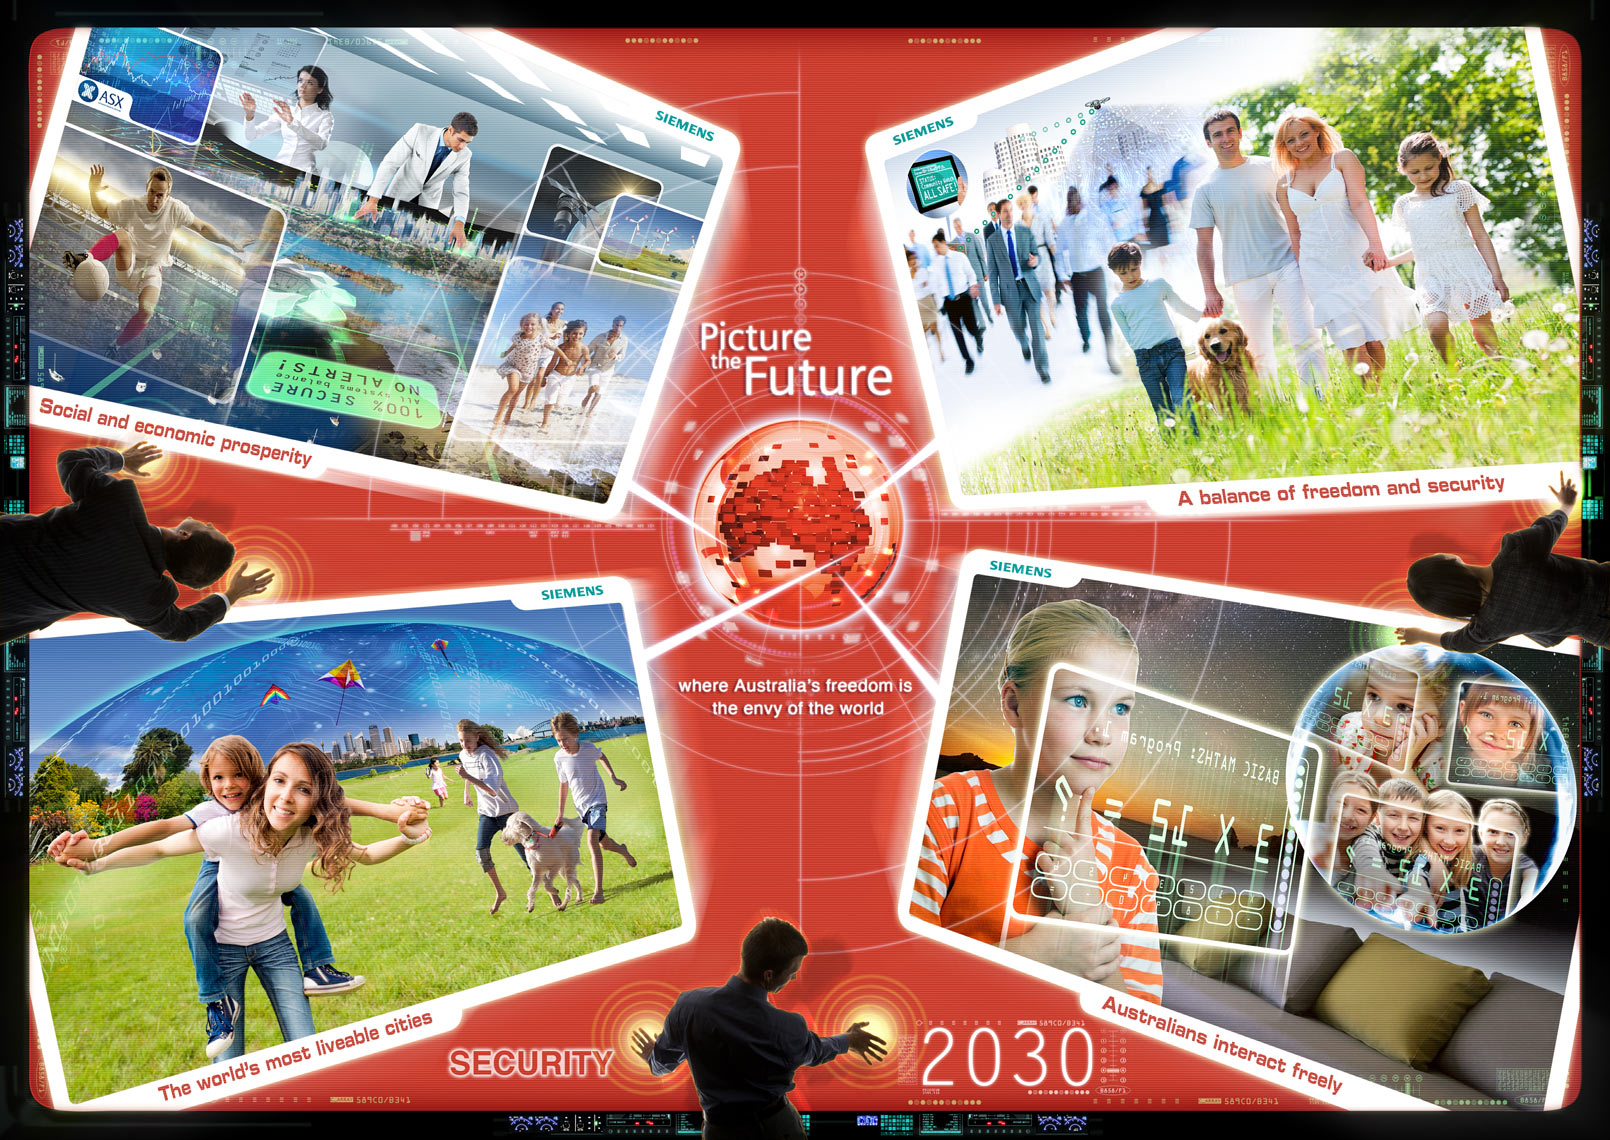 Security - Siemens Picture the Future communication design photoshop expert